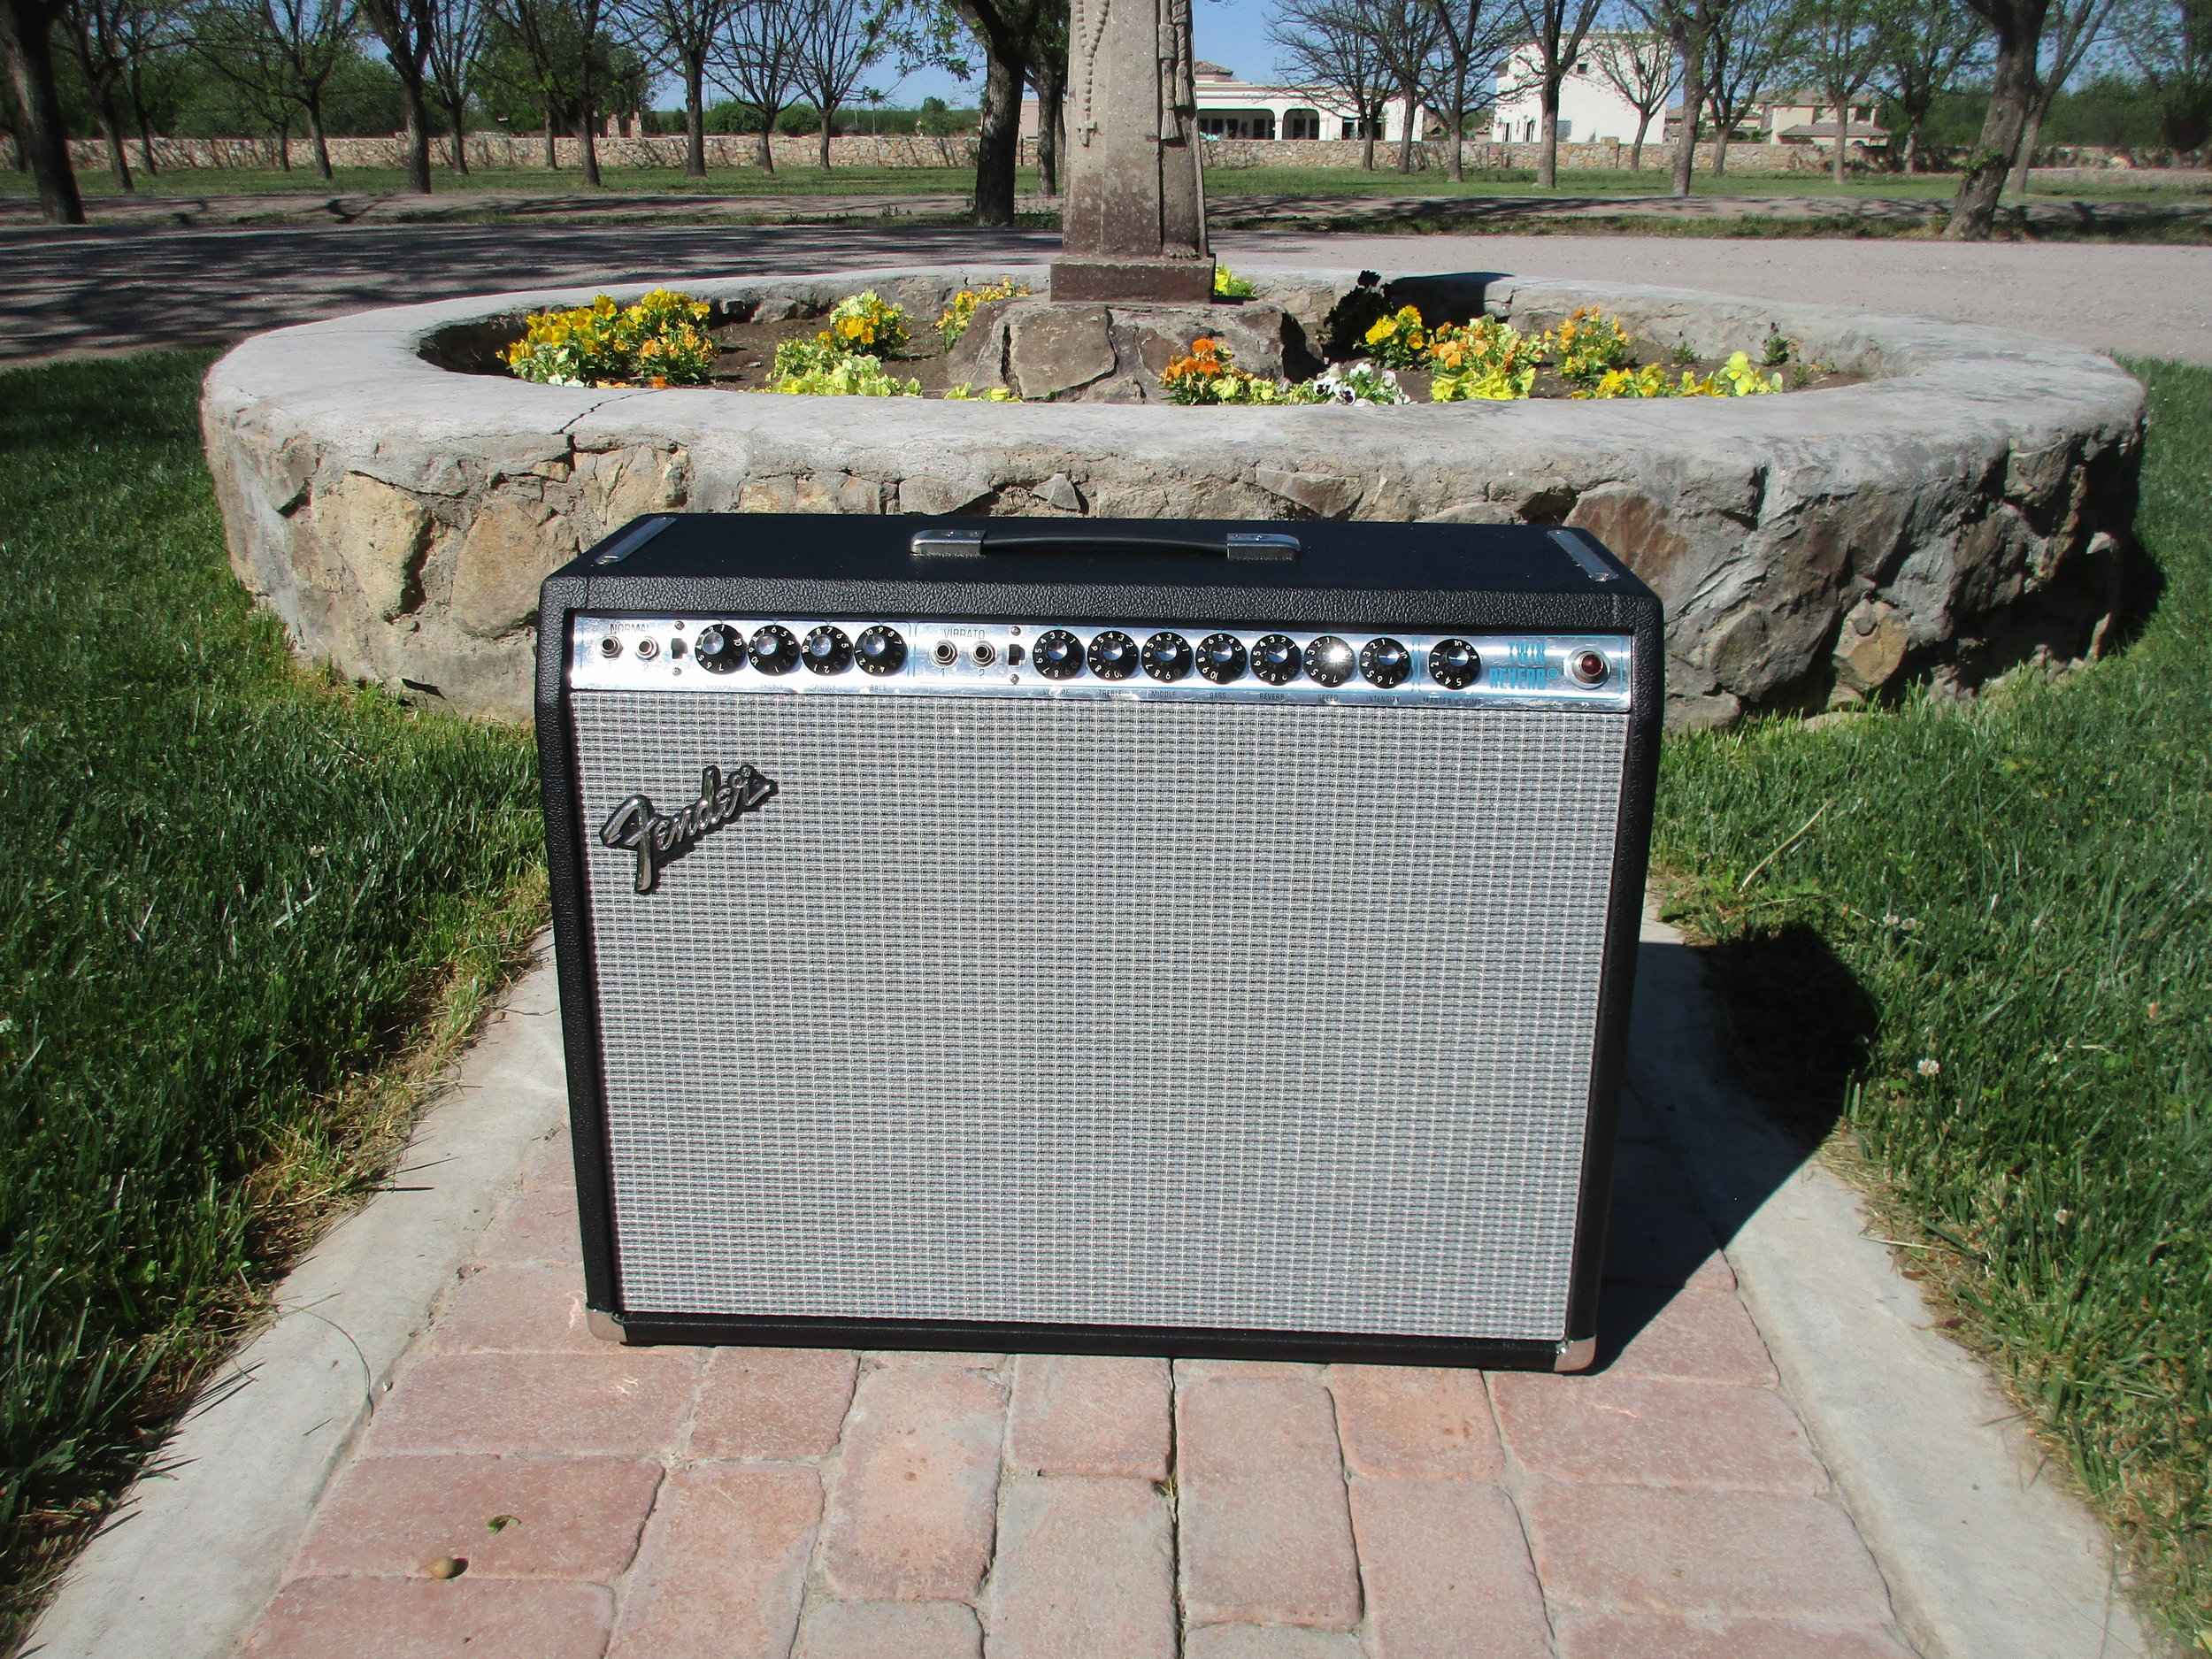 Here's vintage Fender Silverface Twin that I restored. It's the 135W version with an ultra-linear output transformer. Some people find find them too cold sounding but with some gentle tweaks the can sound amazing. This amp is loud and super clean so a wonderful reverb! Around the time this amp was made Fender started lap joining their cabs and the original cabinet was a gig away from falling apart. We replaced the cabinet, restored the electronics and spiffed it up as best possible. Now it ready form many more years of action!